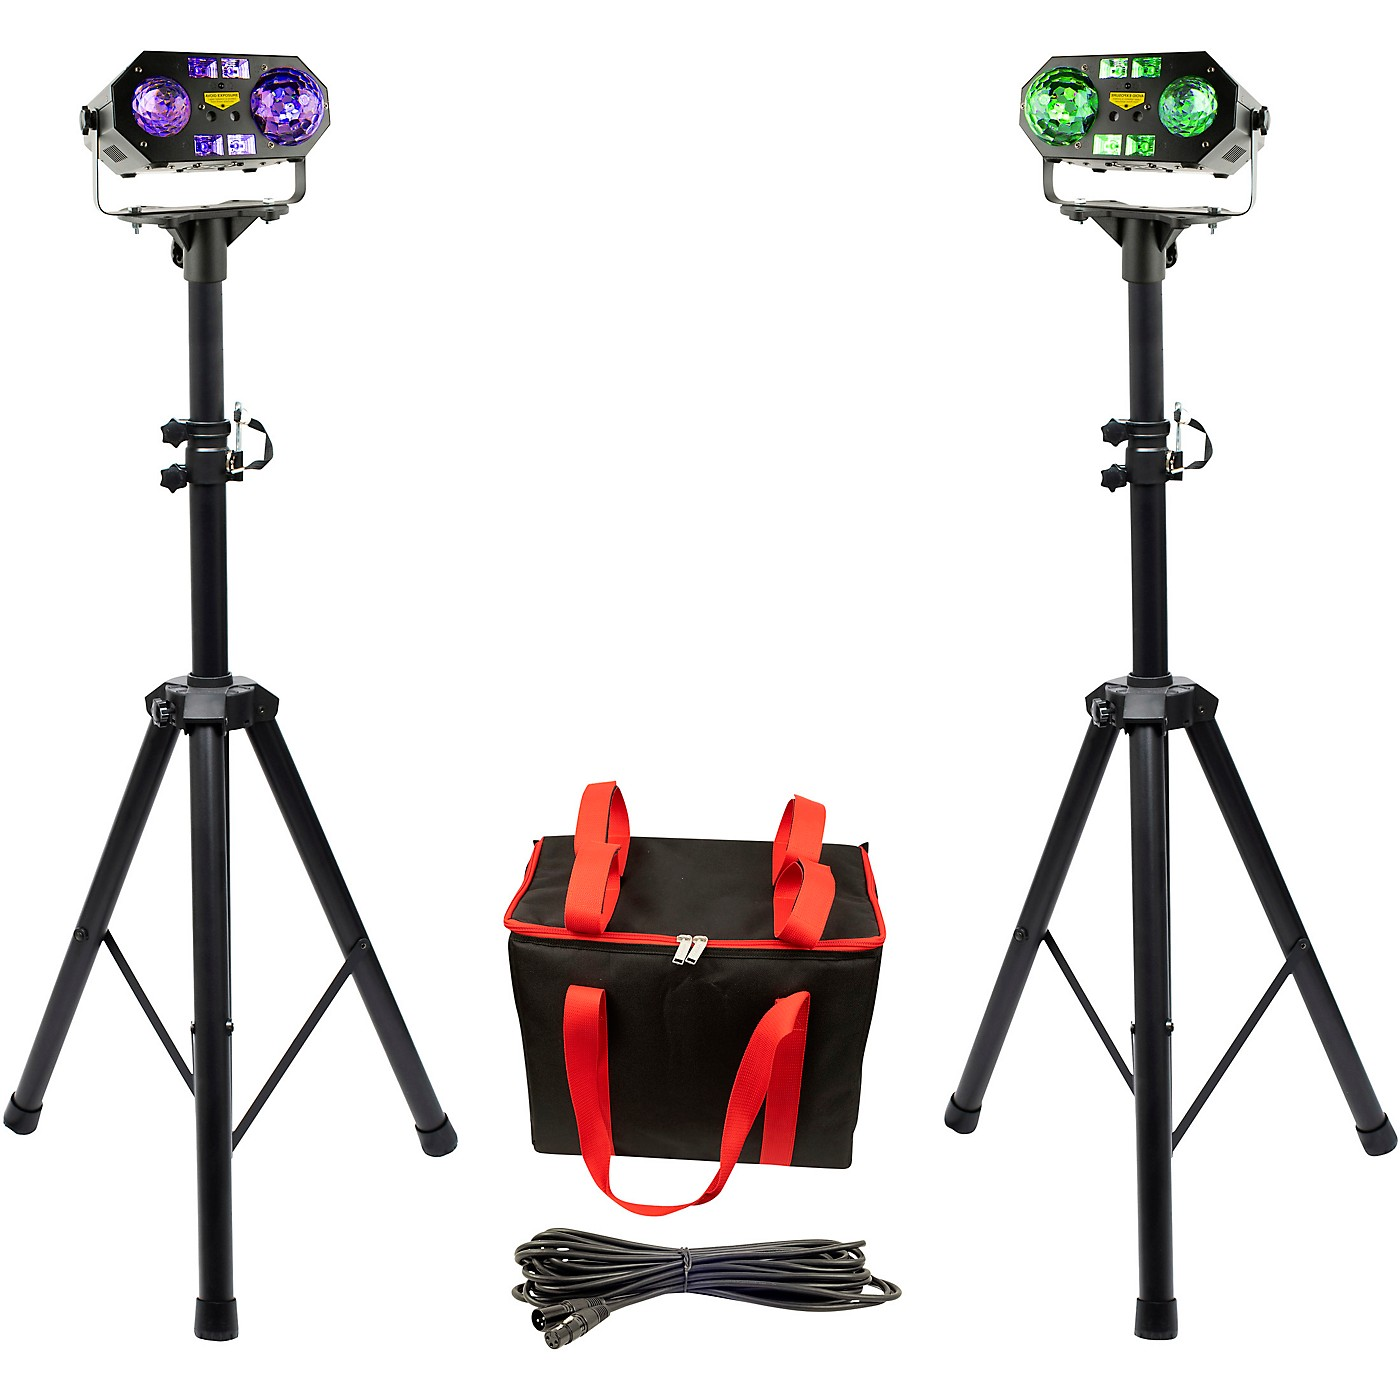 VocoPro Dynamic-Duo-Plus, Two DJ-Smart-LightShows Package With Two SS-99 Stands and Carrying Bag thumbnail